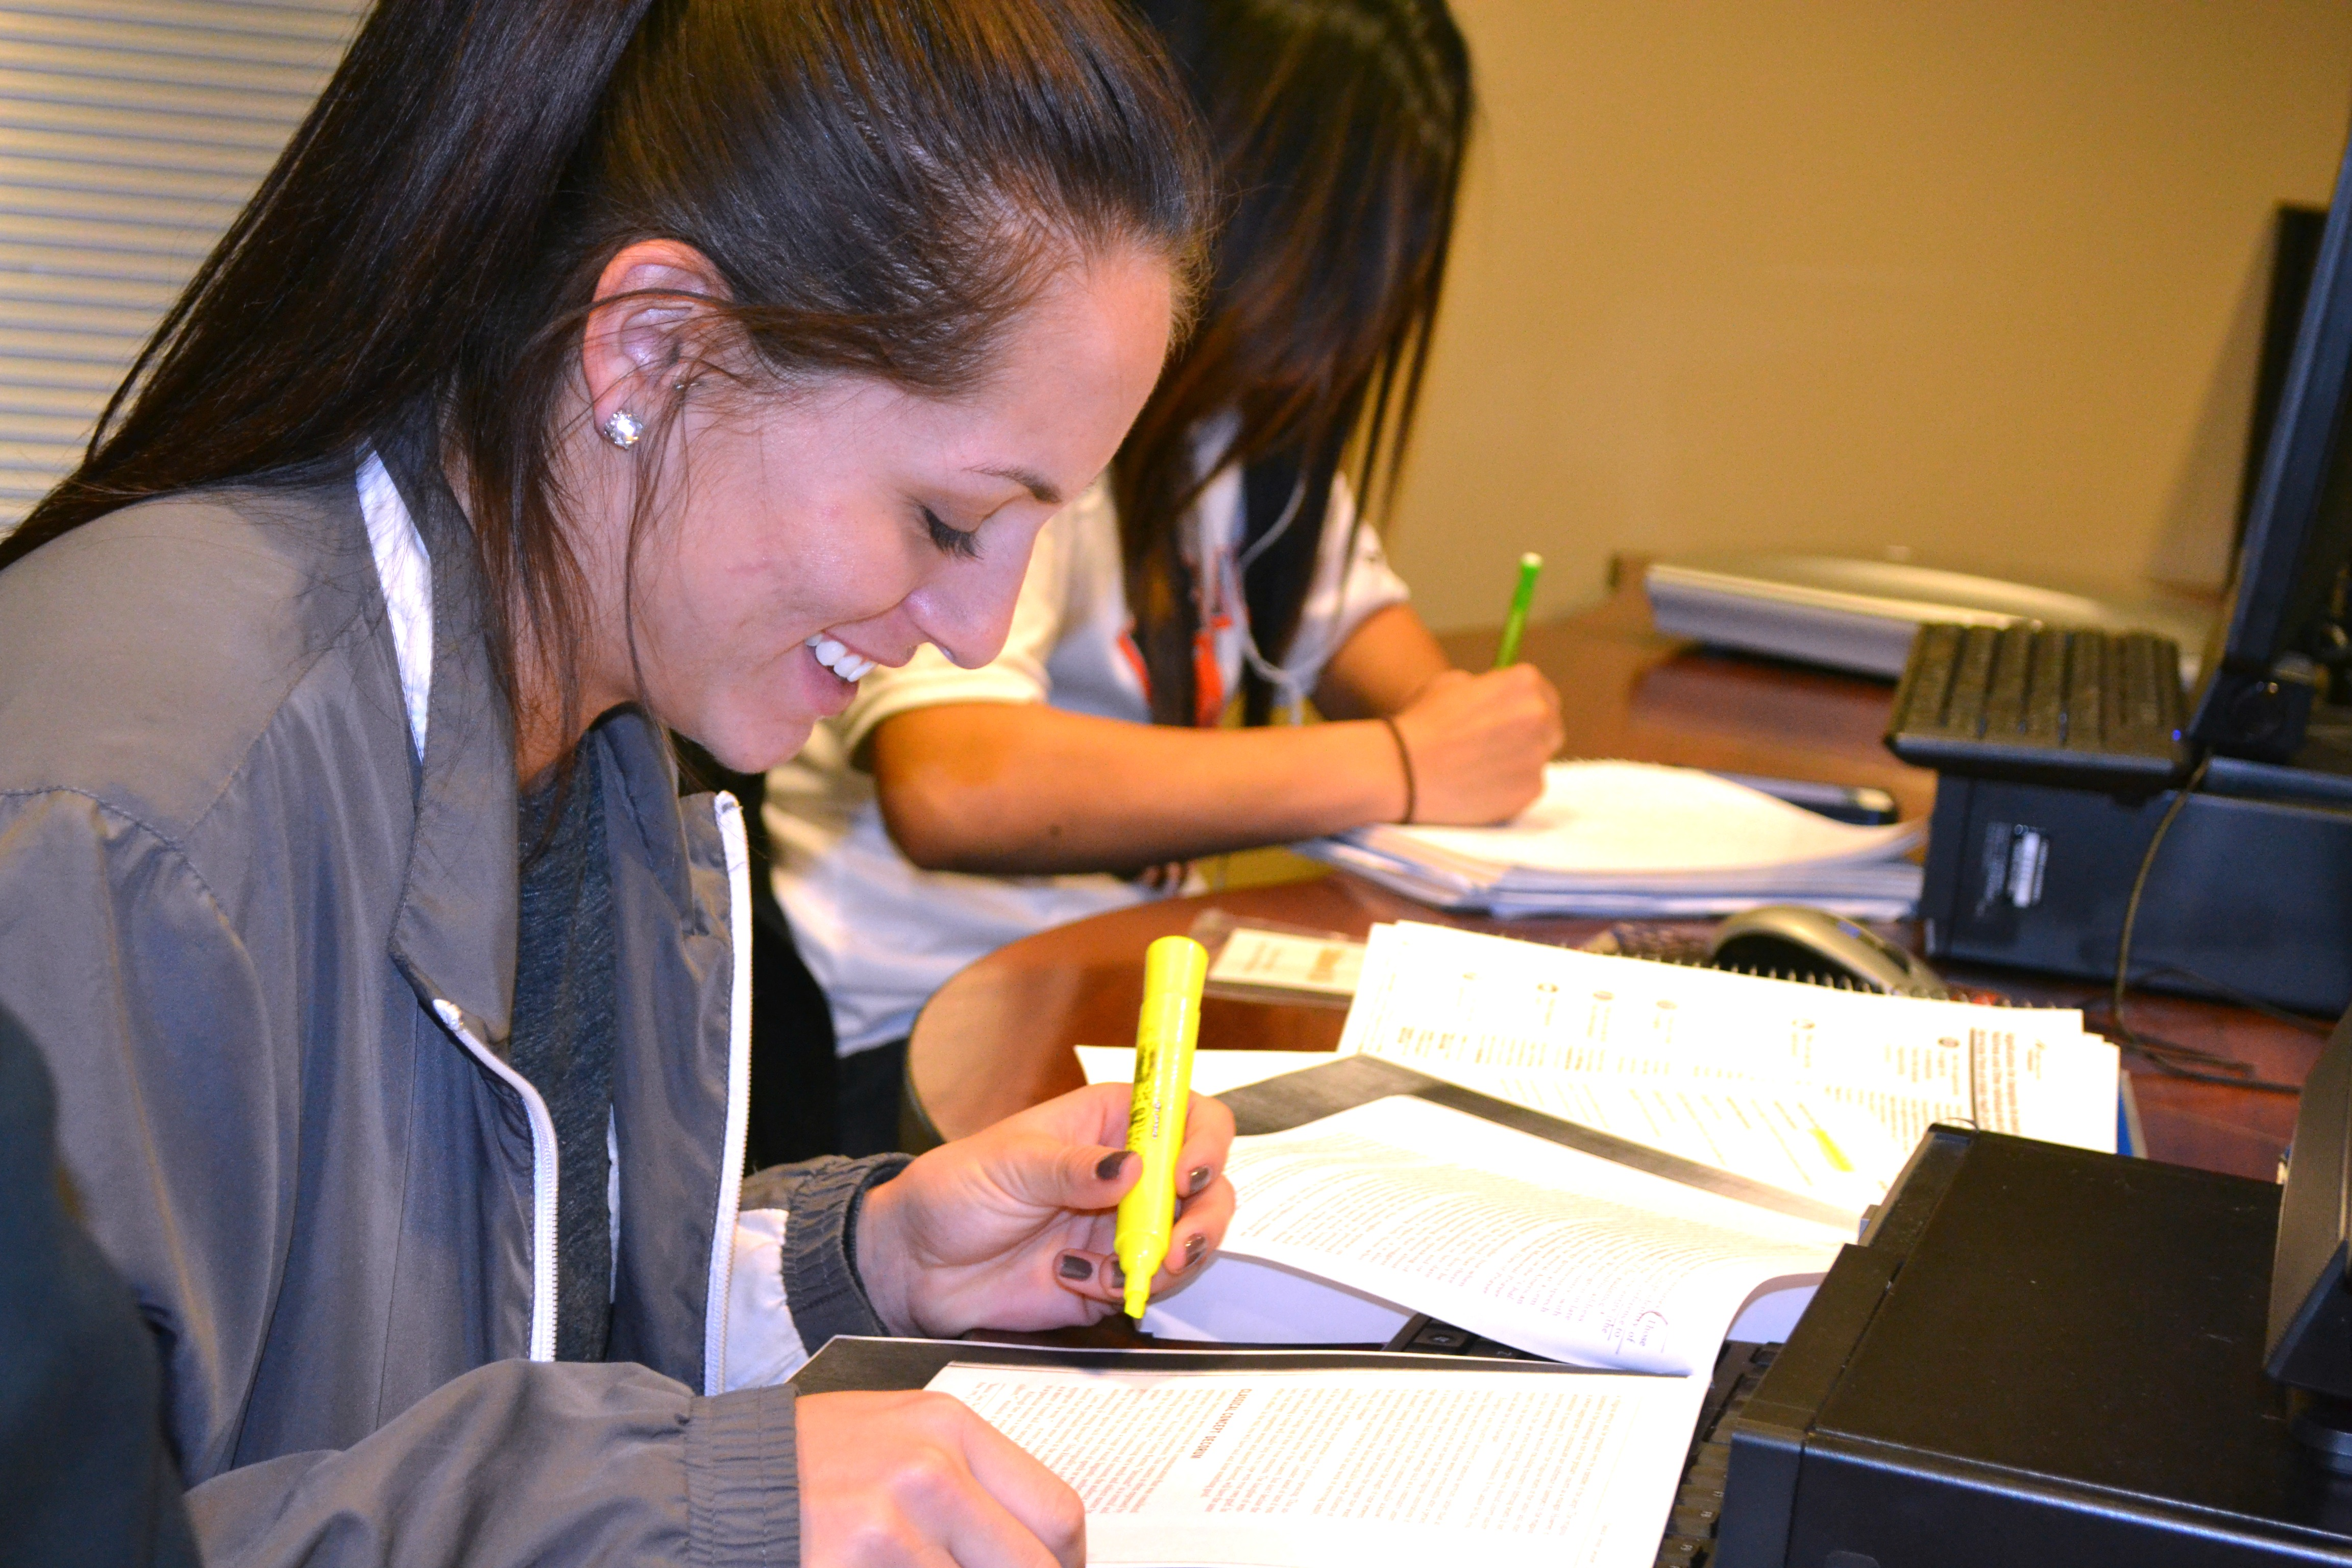 Balancing life on the field and in the classroom